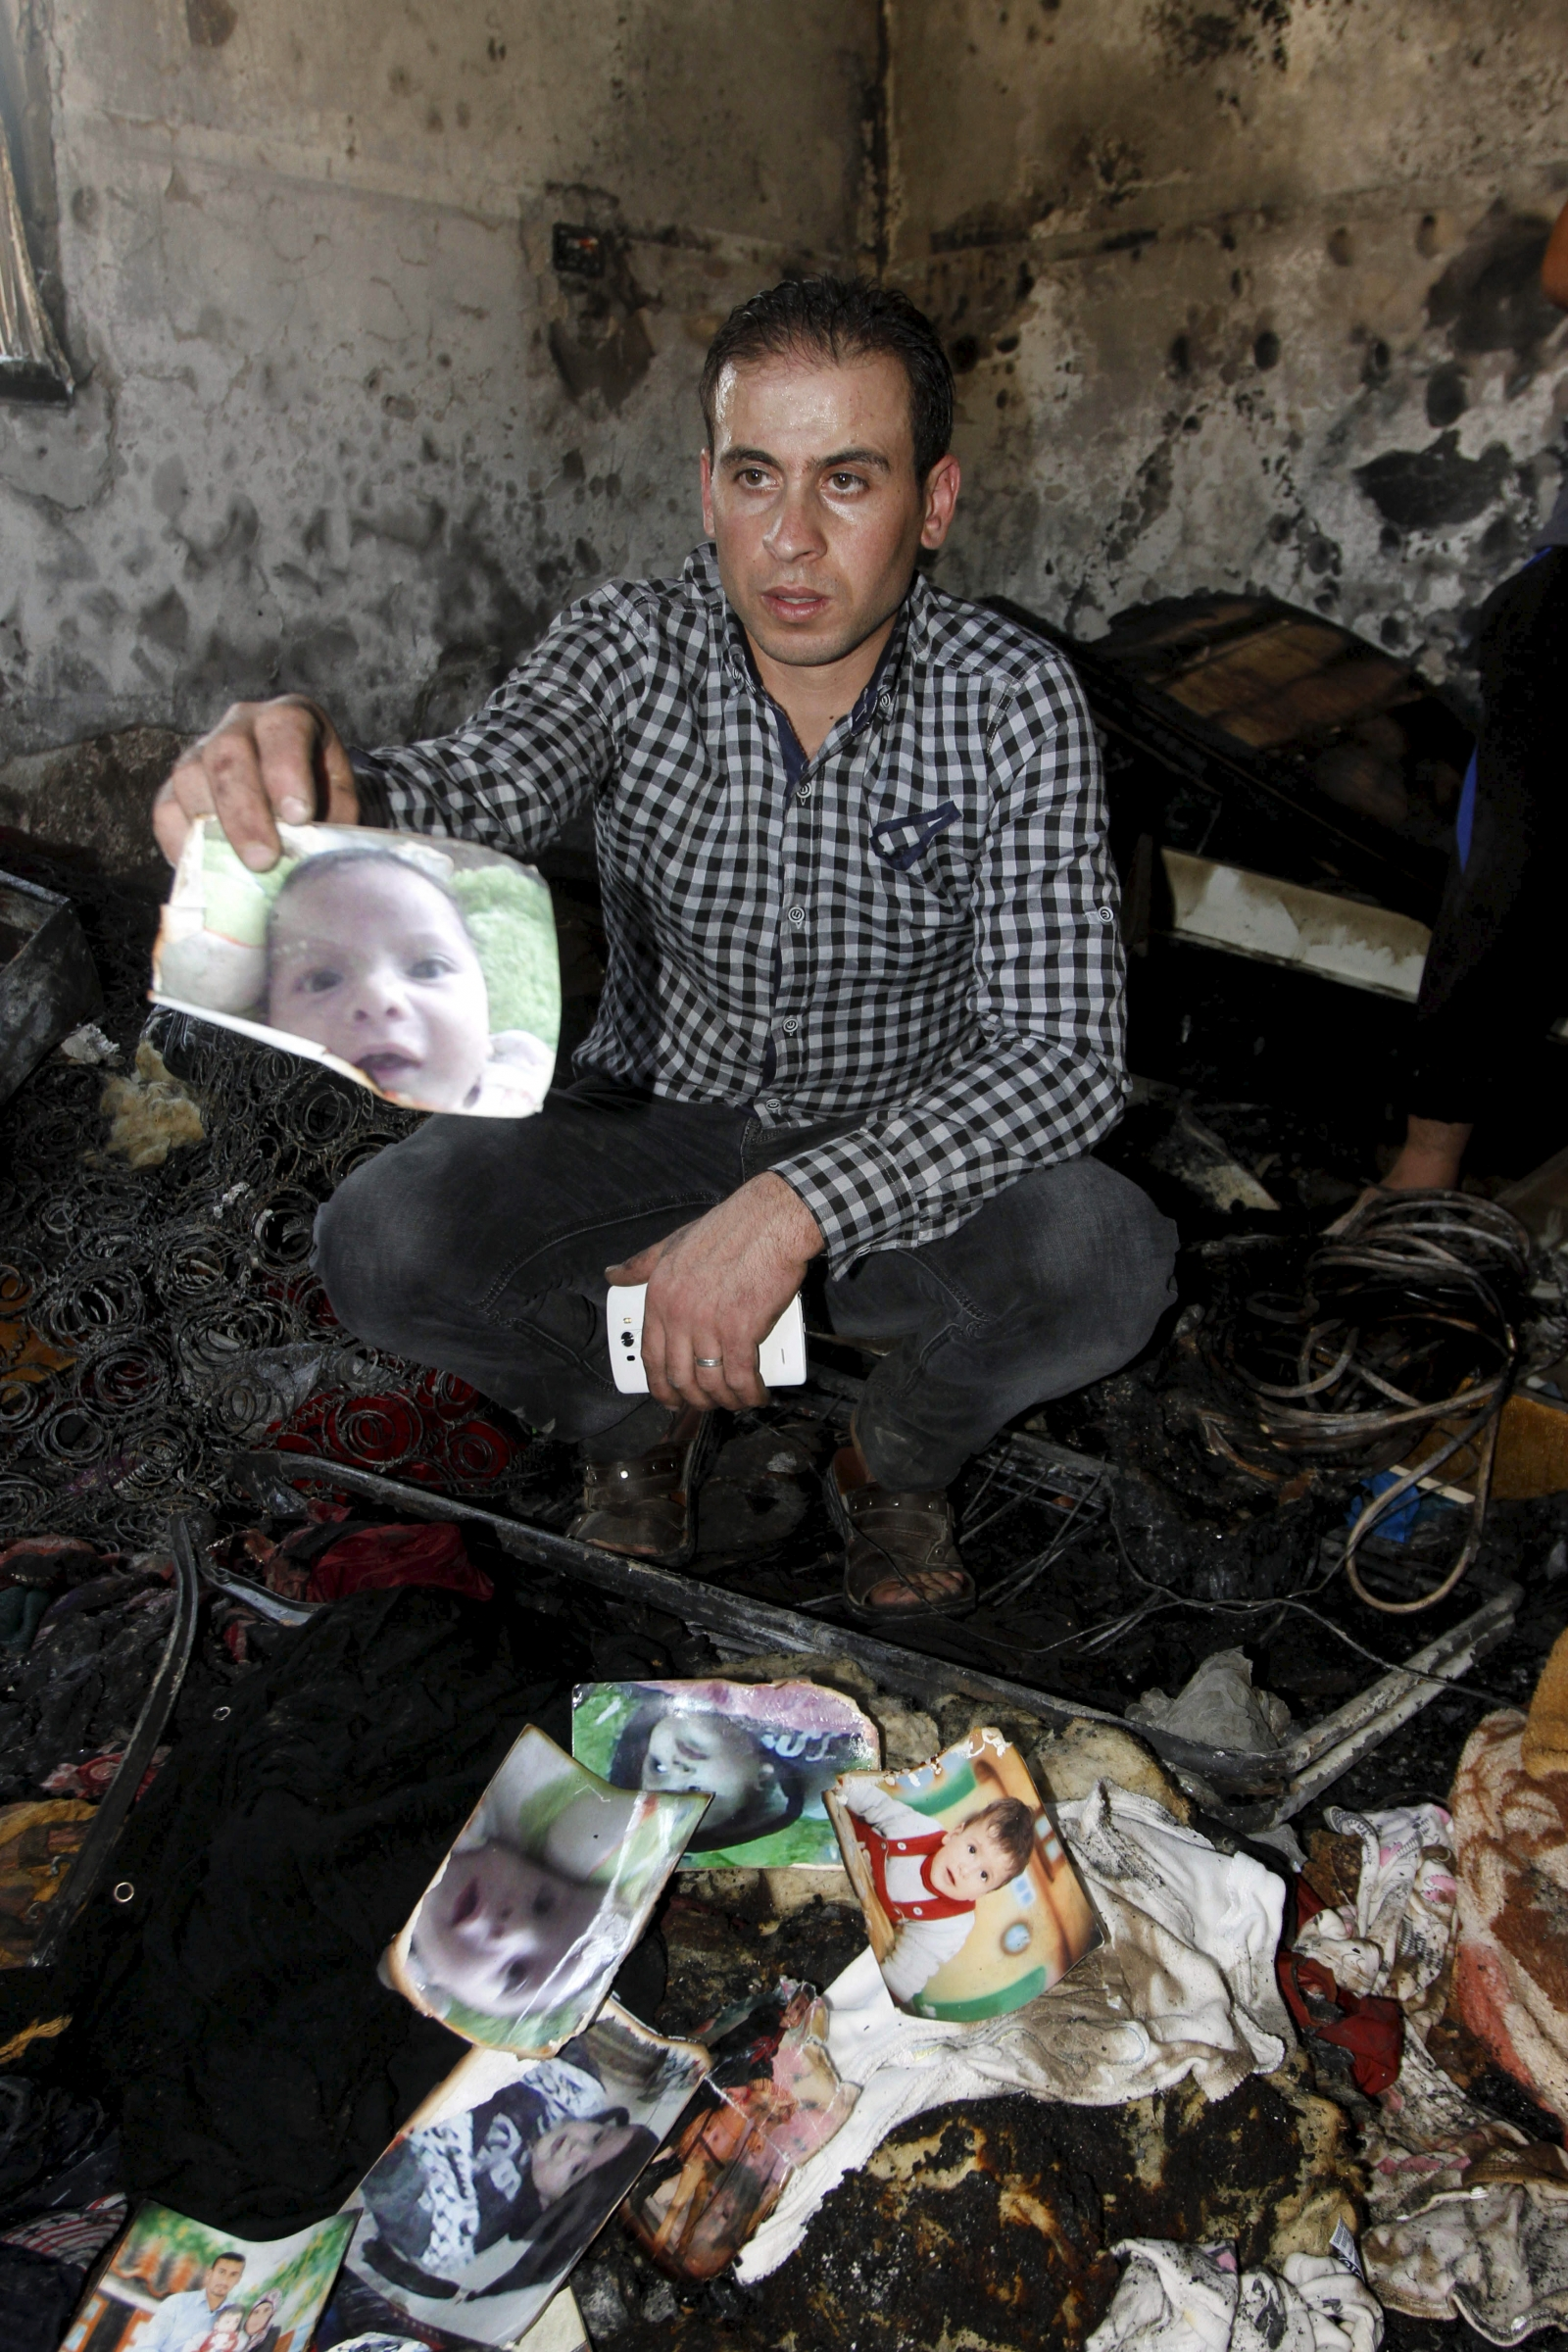 Palestinian toddler burned to death